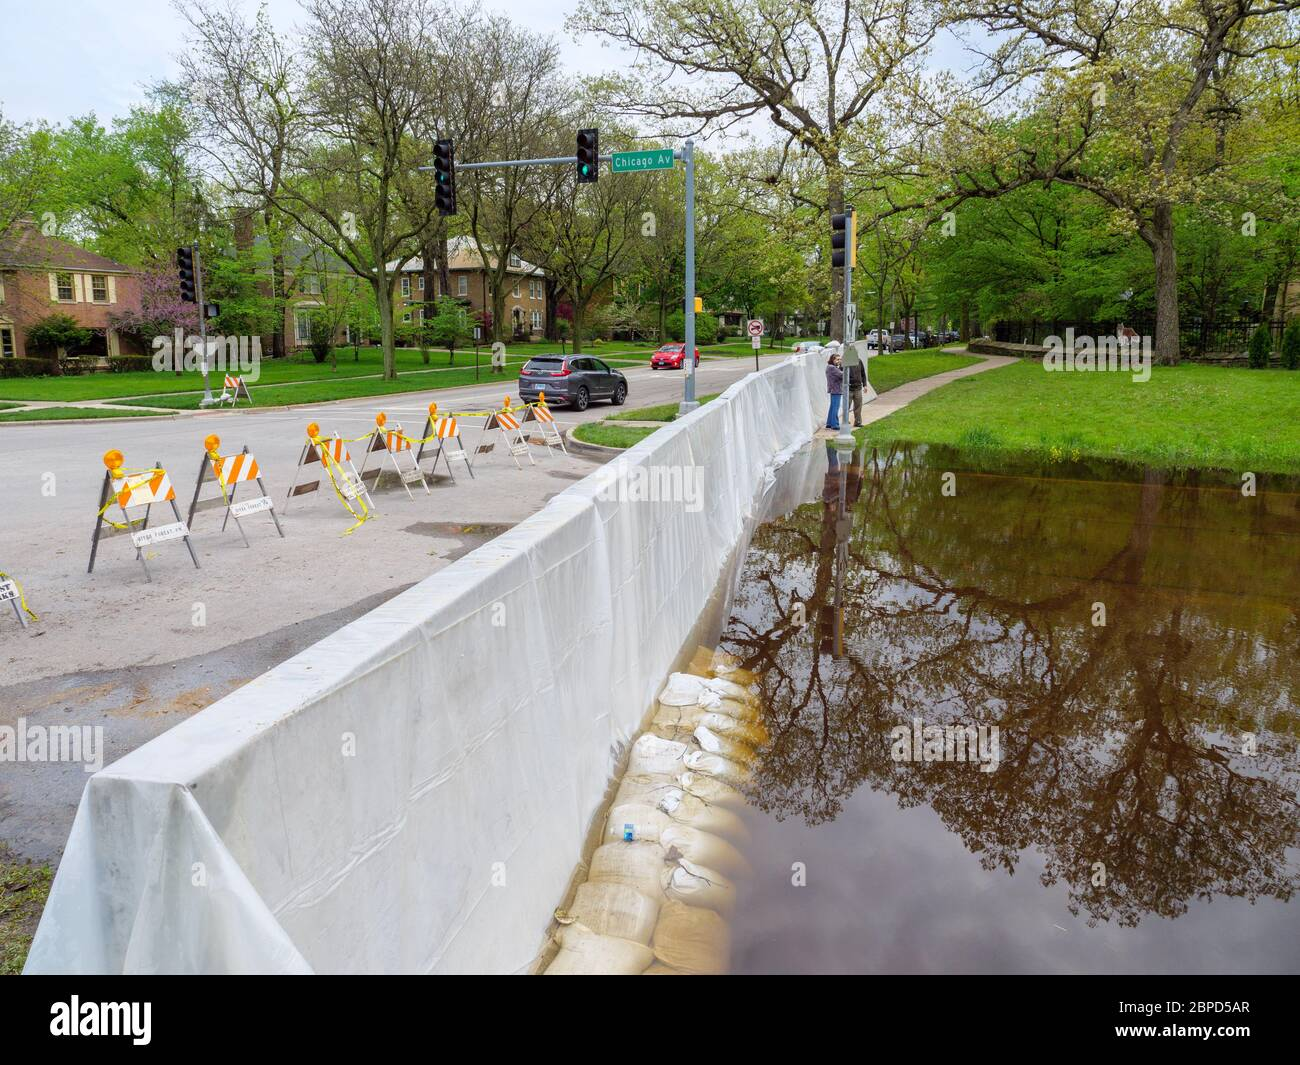 River Forest, Illinois, USA. 18th May 2020.  A temporary flood barrier constructed across Chicago Avenue holds Des Plaines River floodwater away from this western suburb of Chicago. Stock Photo